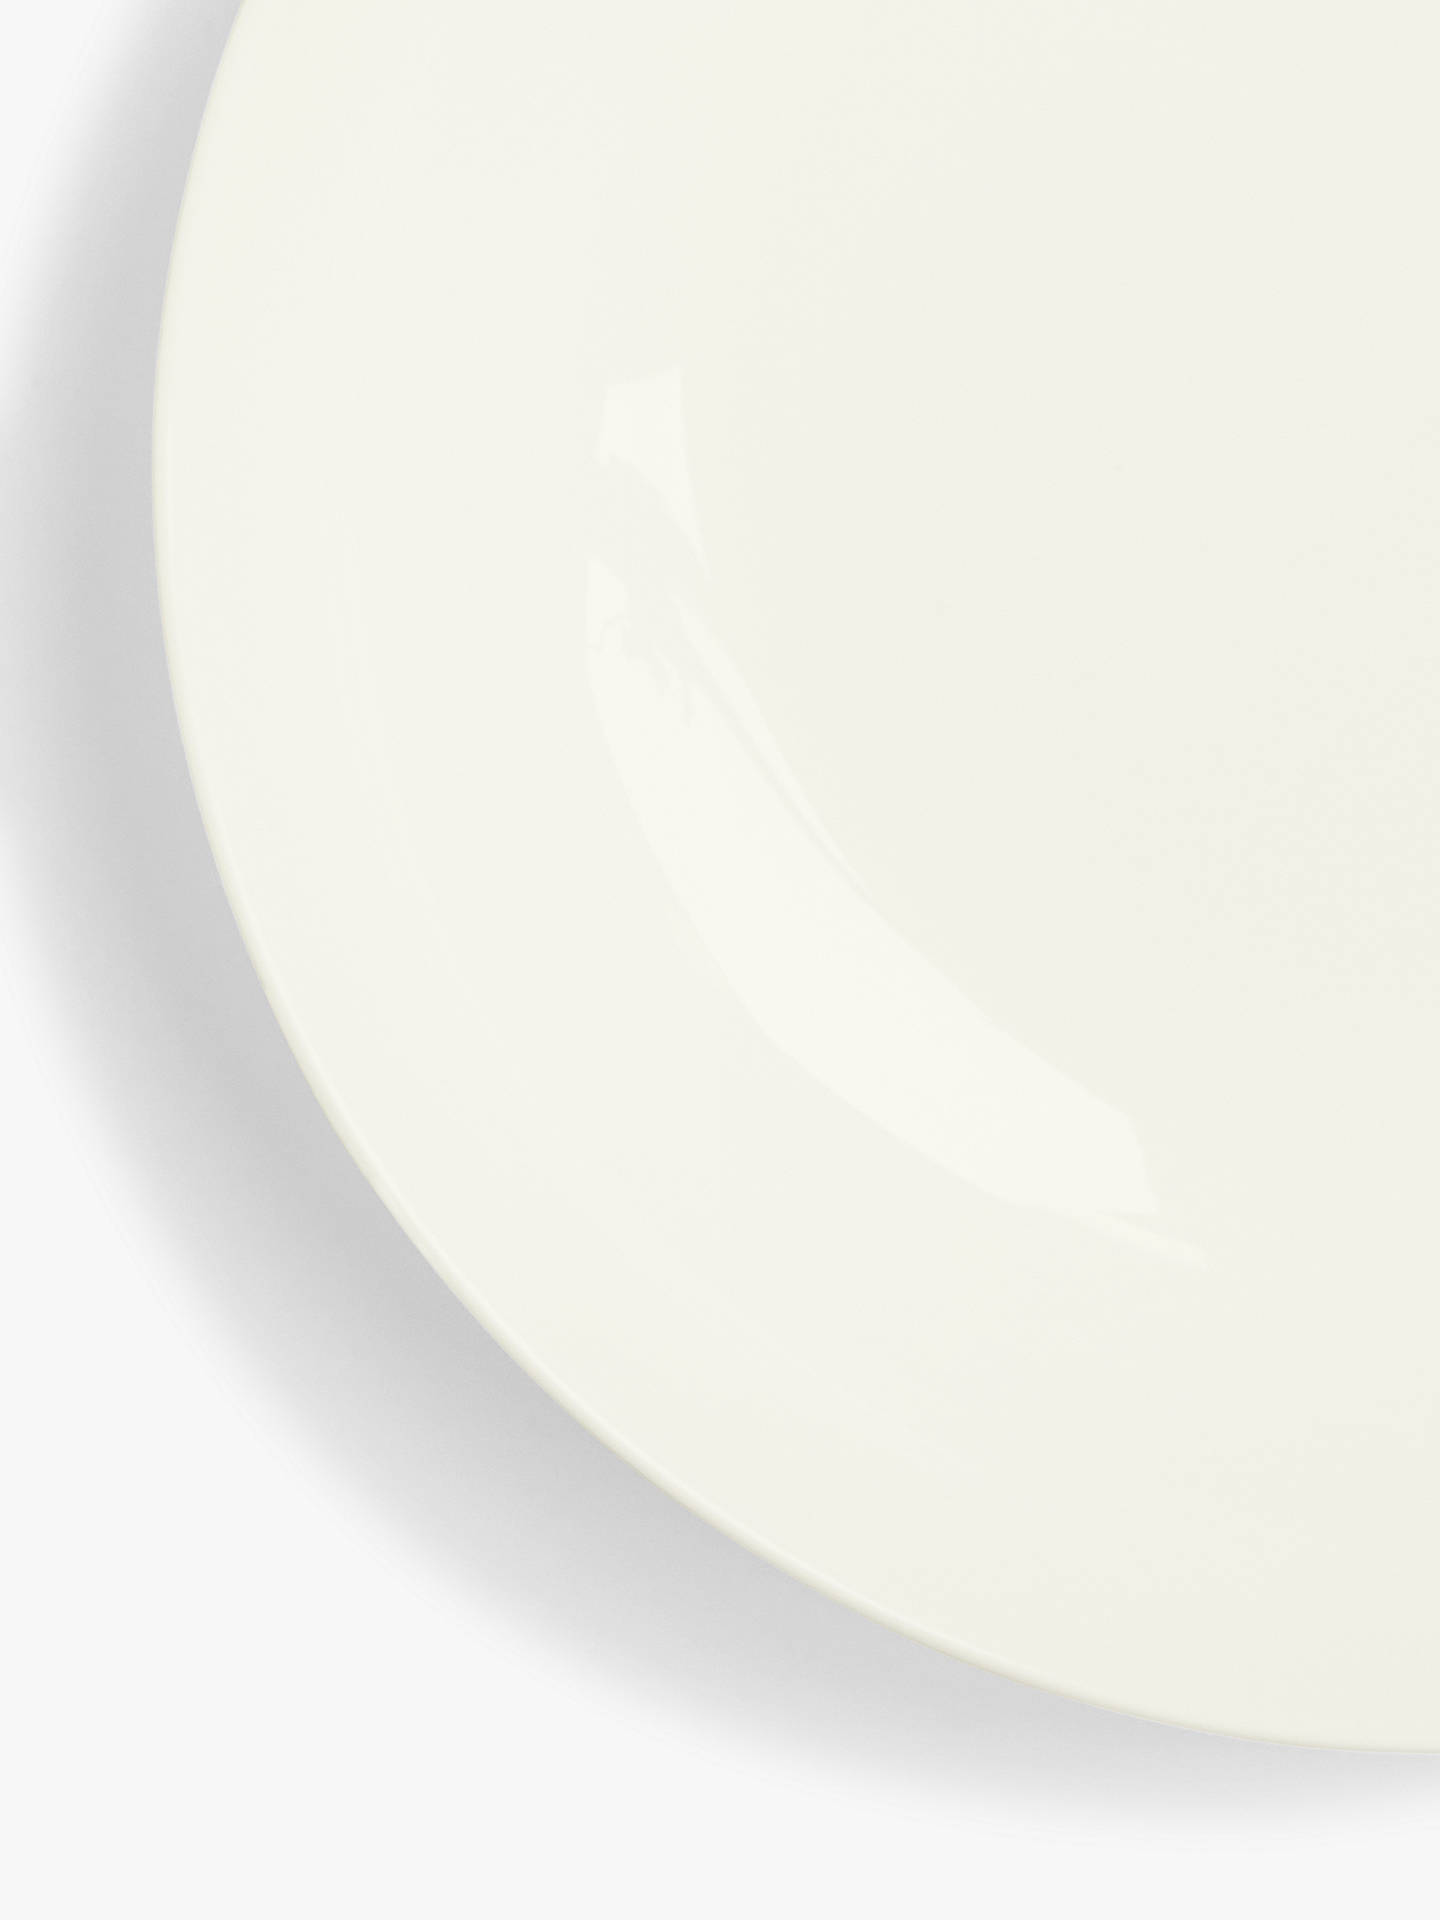 BuyJohn Lewis & Partners Contour Bone China Pasta Bowl, White, Dia.22.5cm Online at johnlewis.com